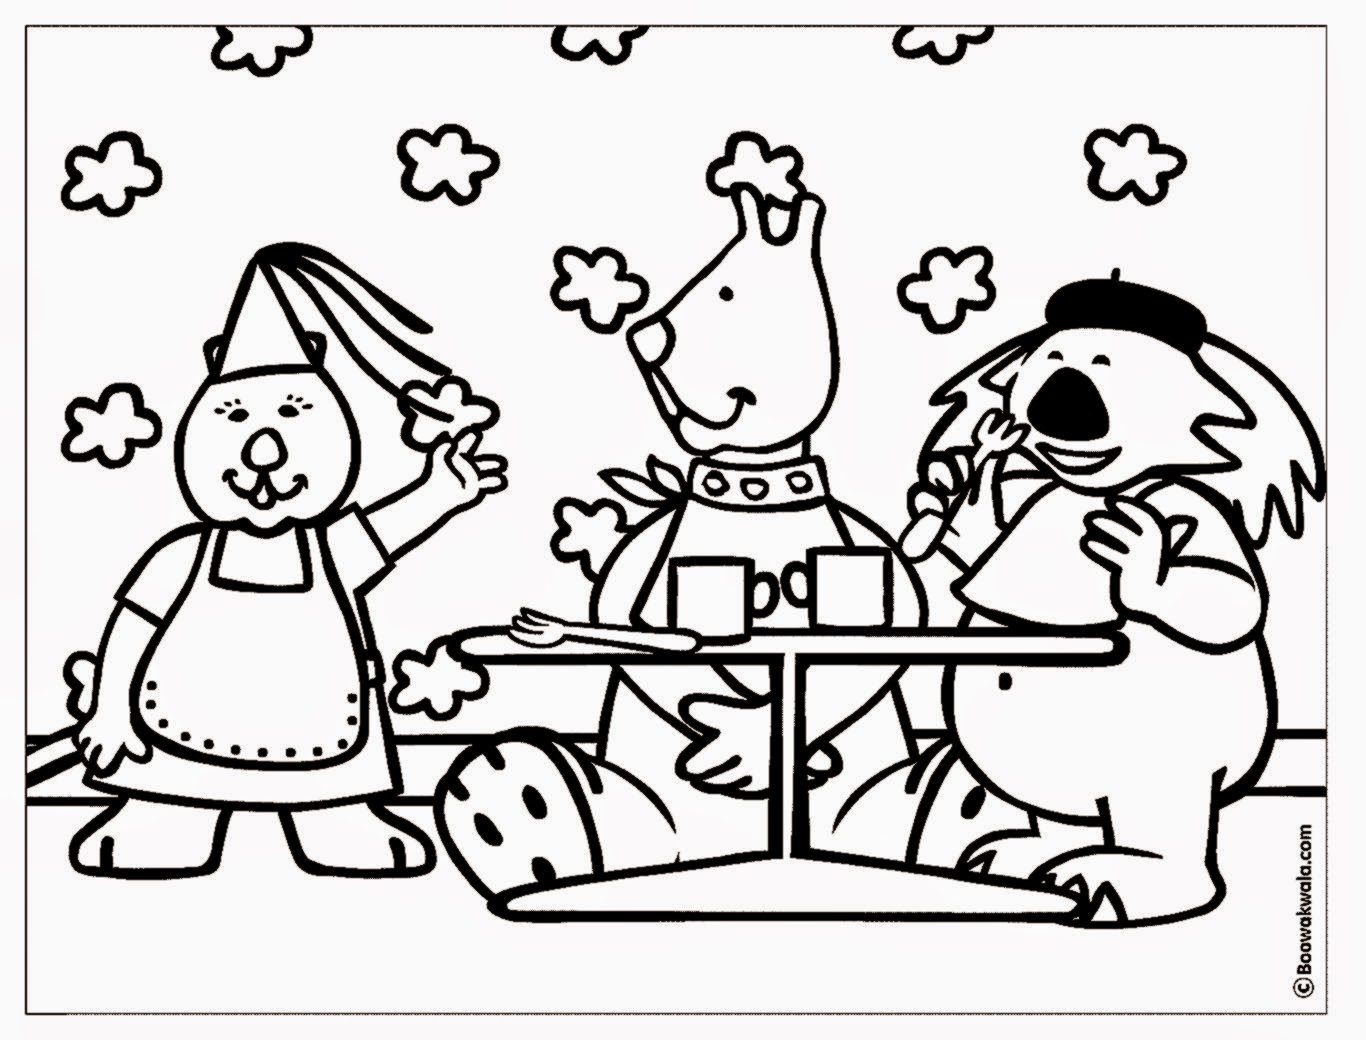 Coloring Pages for Restaurants to Print 6n - Free For kids